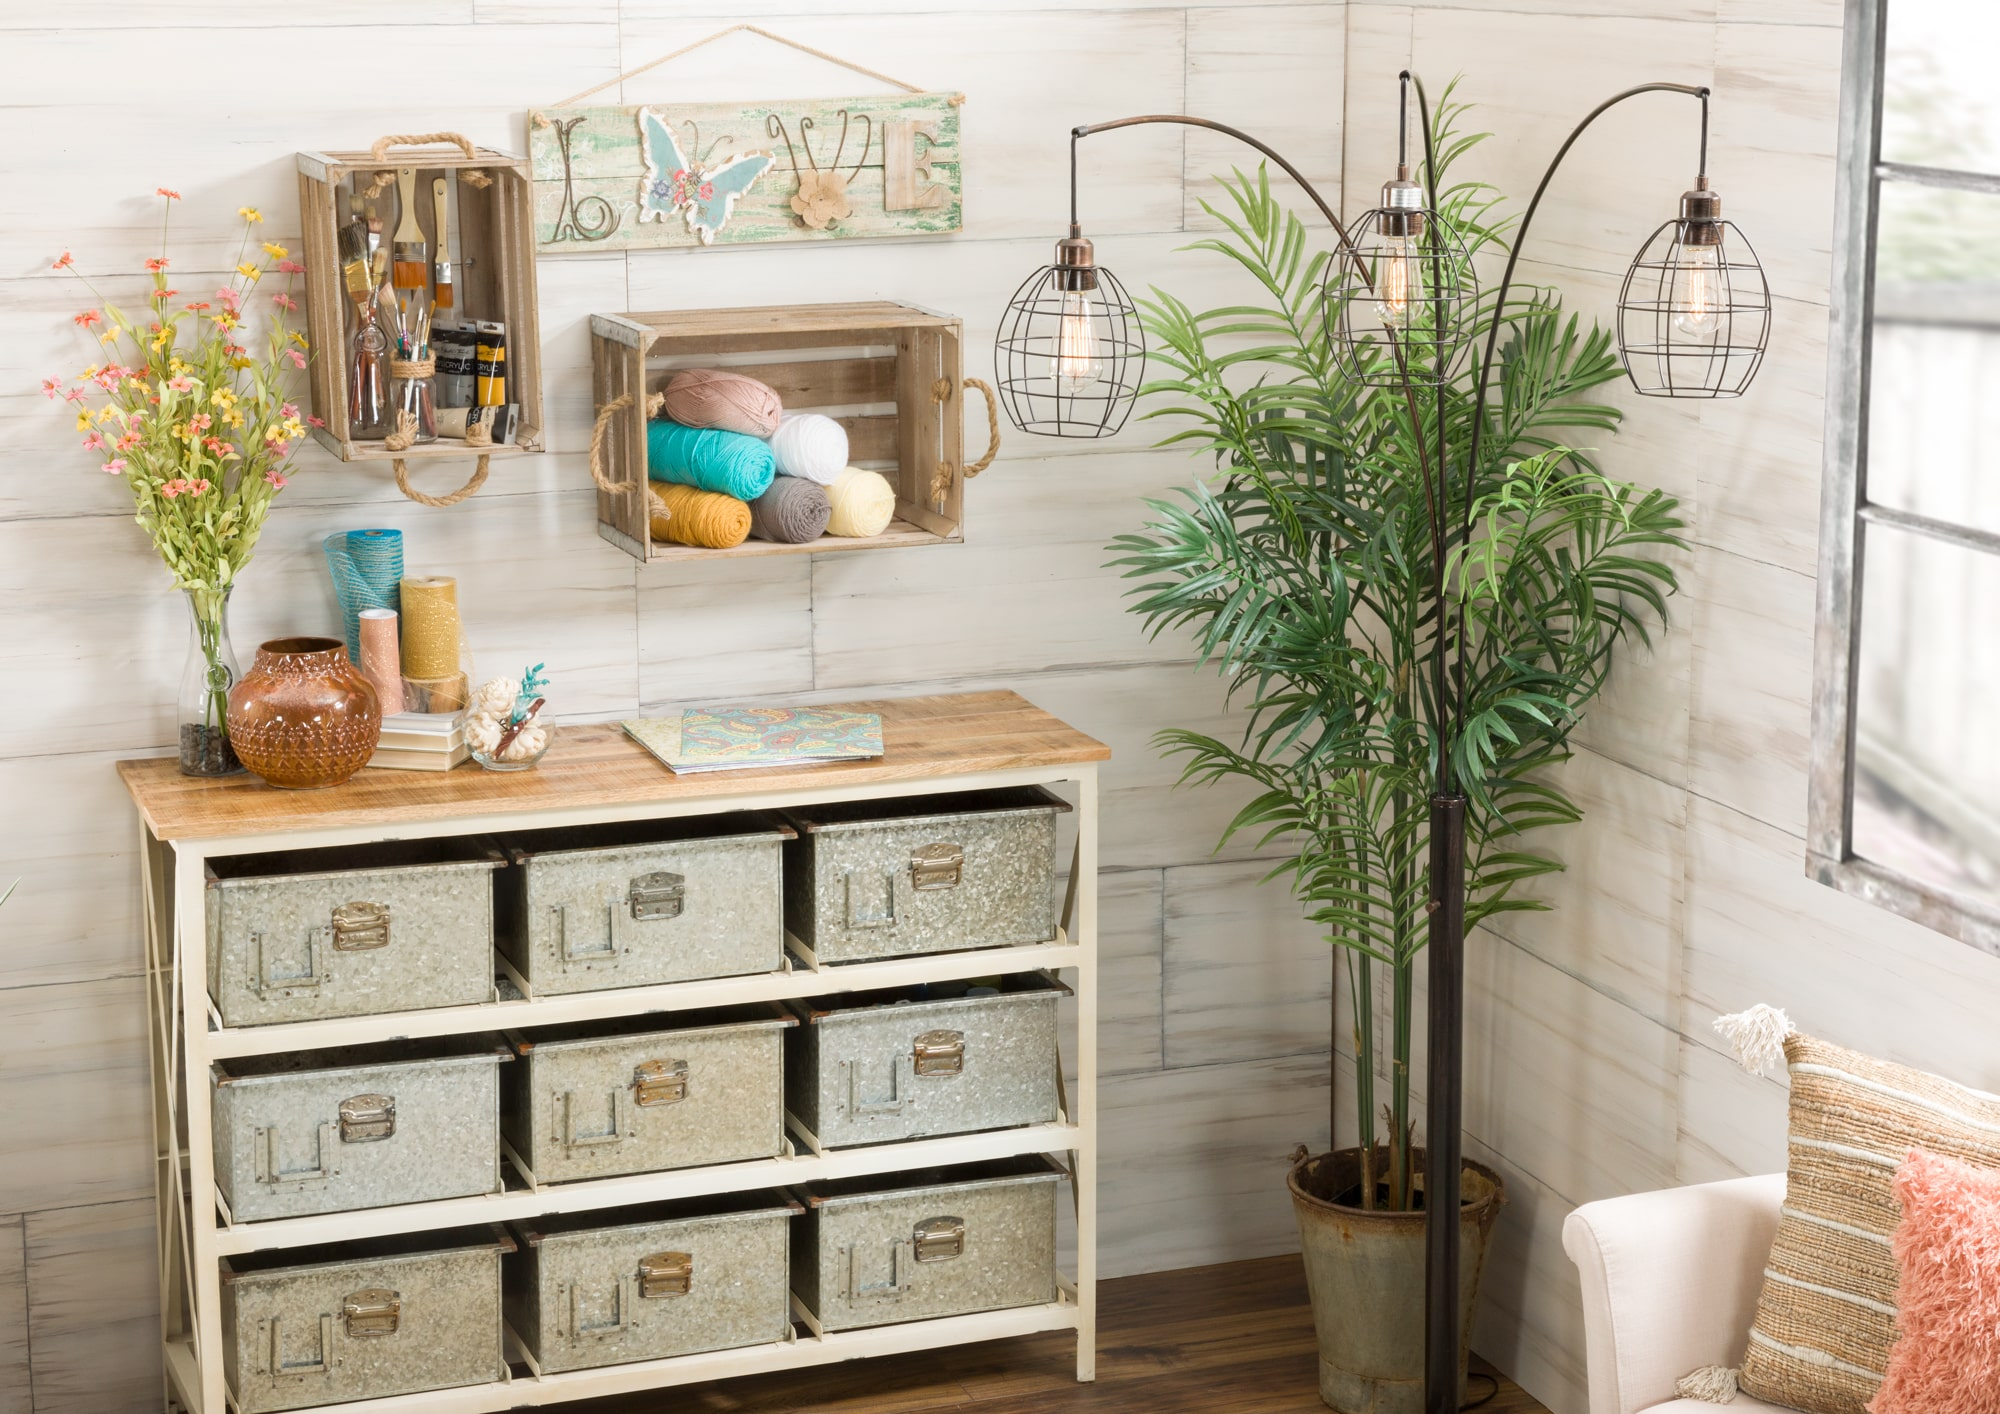 Vintage storage console with wooden crates hanging above it